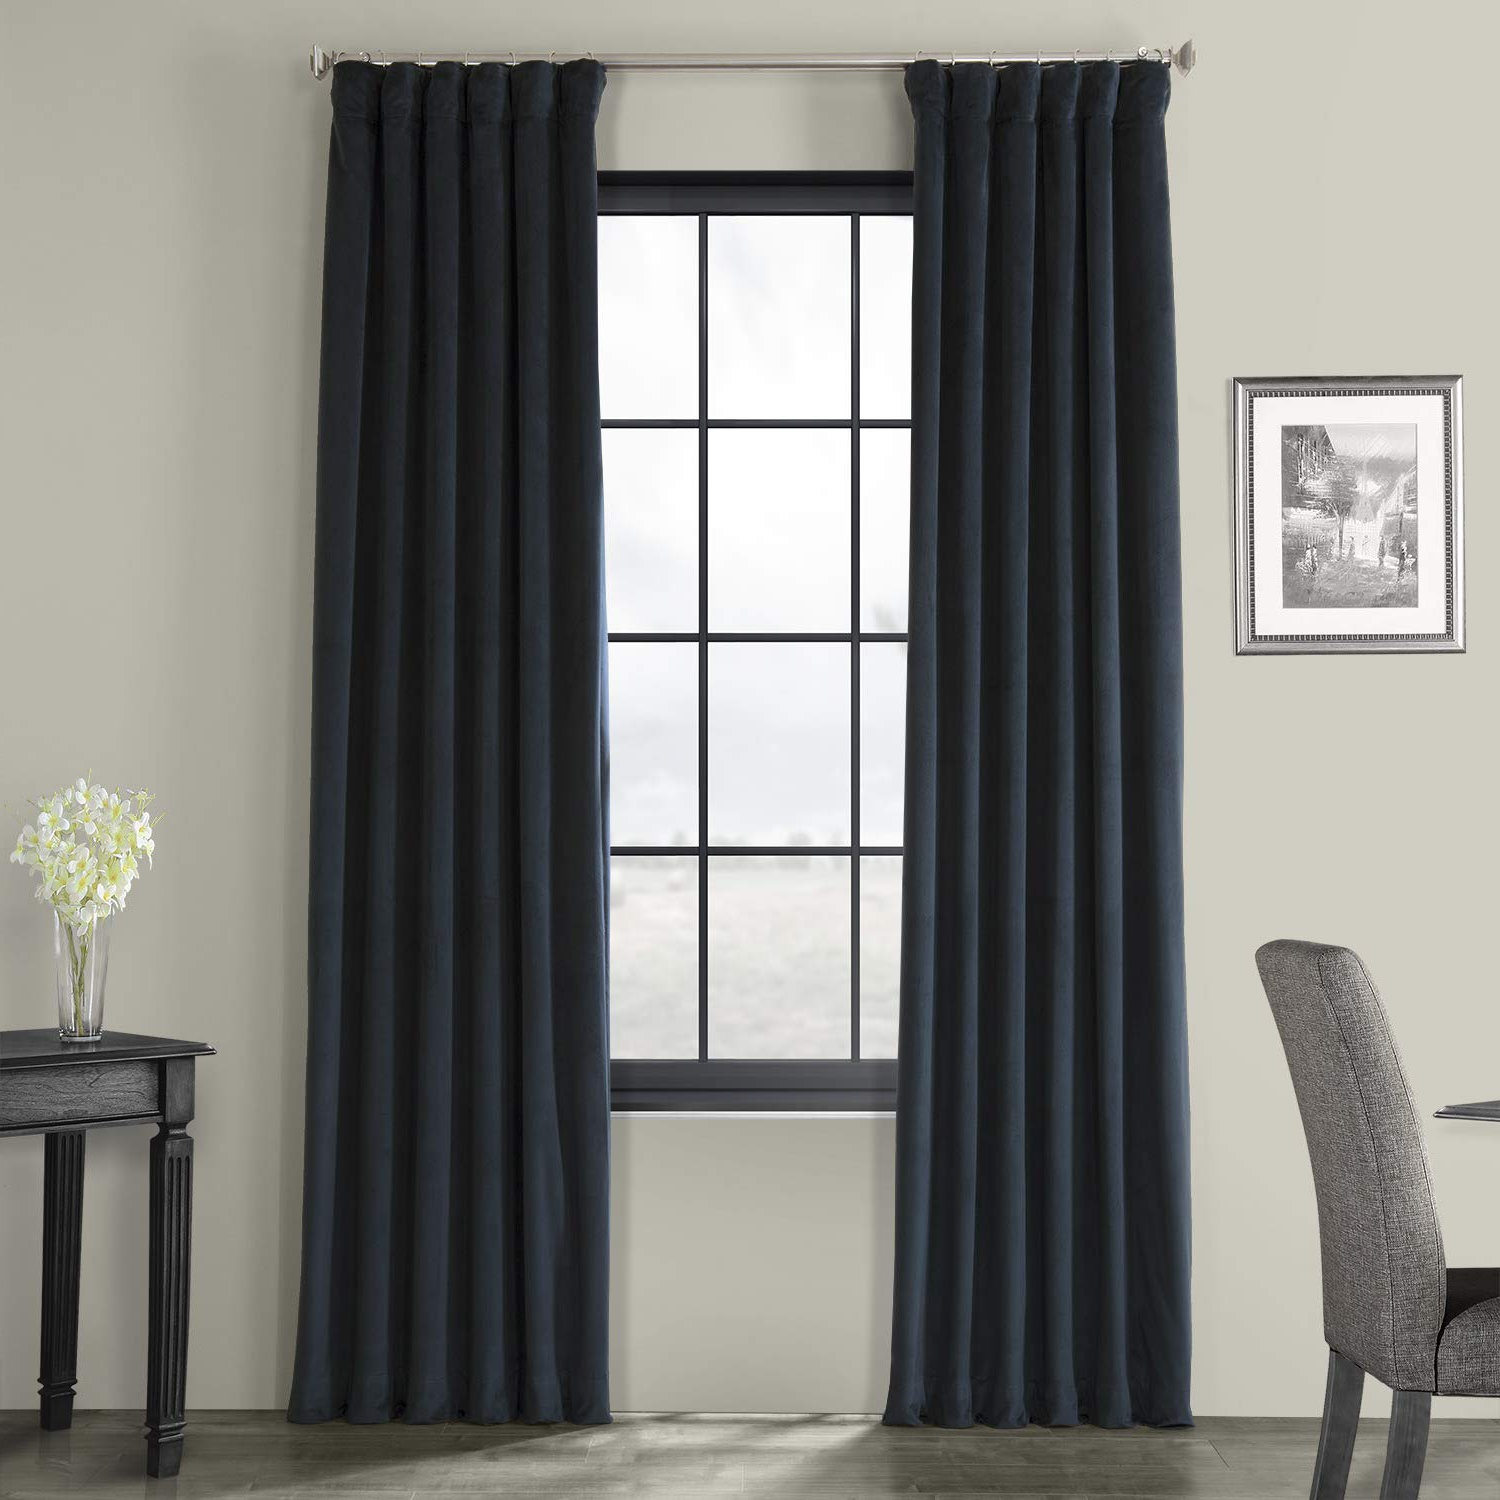 Fashionable Half Price Drapes Vpch 194023 108 Signature Blackout Velvet Curtain,  Midnight Blue, 50 X 108 For Signature Blackout Velvet Curtains (Gallery 2 of 20)